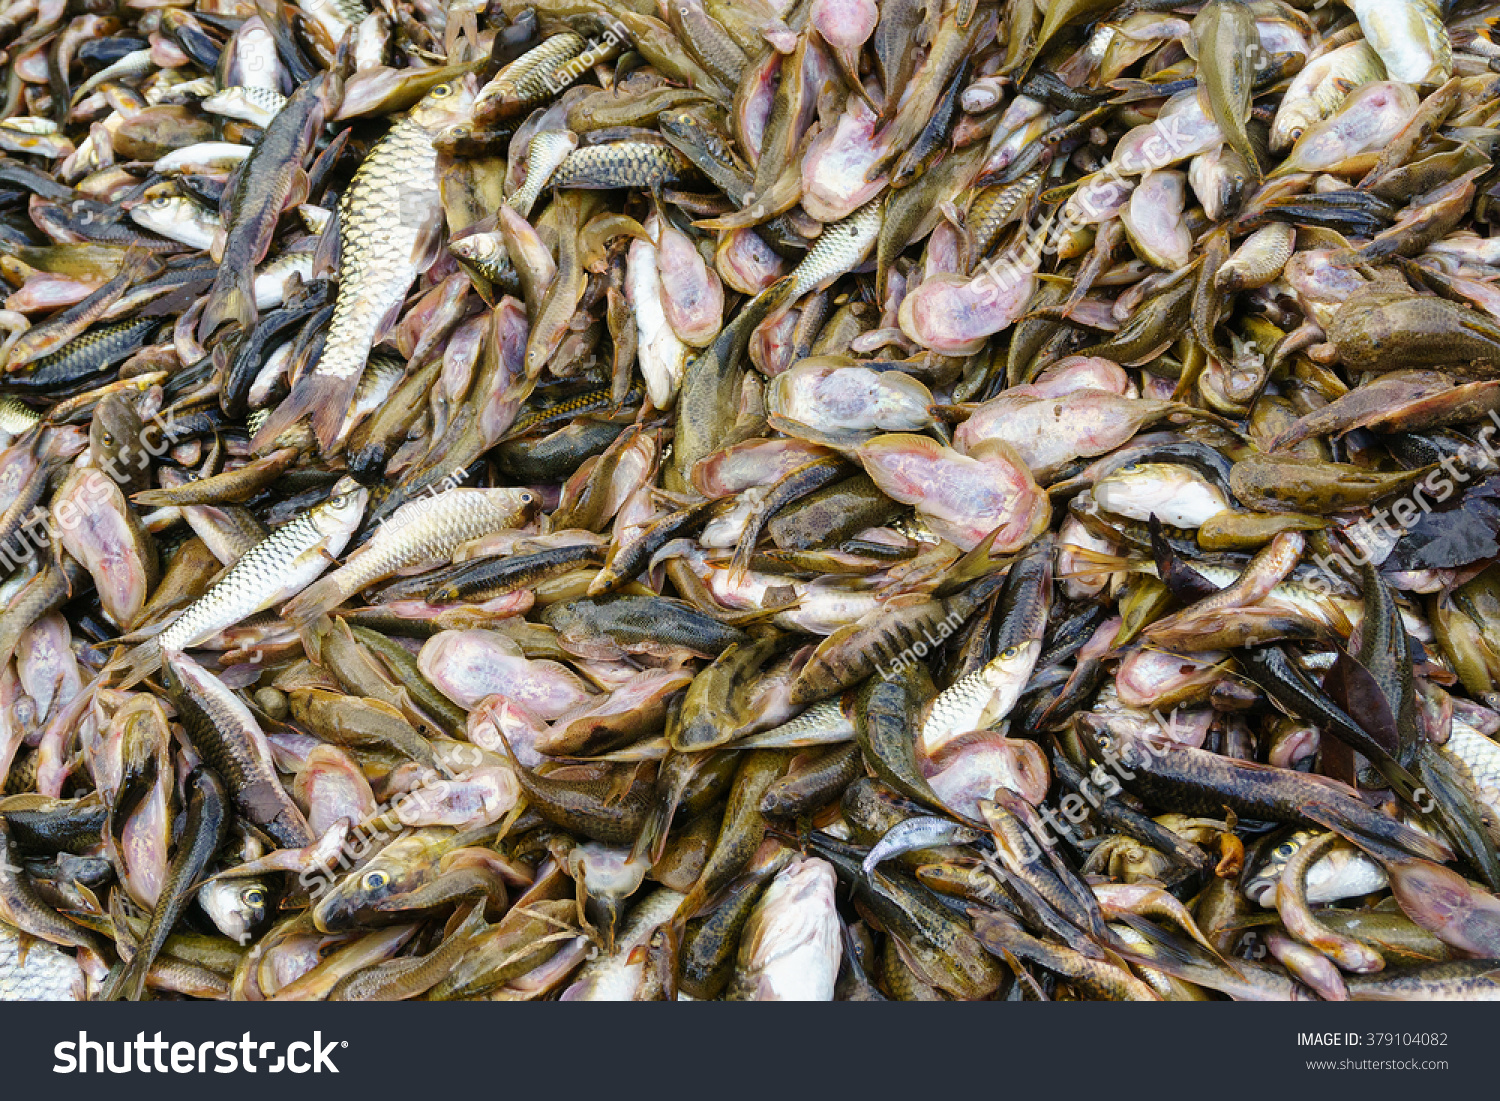 Freshwater fish in malaysia - Abundance Of Freshwater Fish From Tropical River Consist Of Borneon Sucker Fish Malaysian Mahseer And